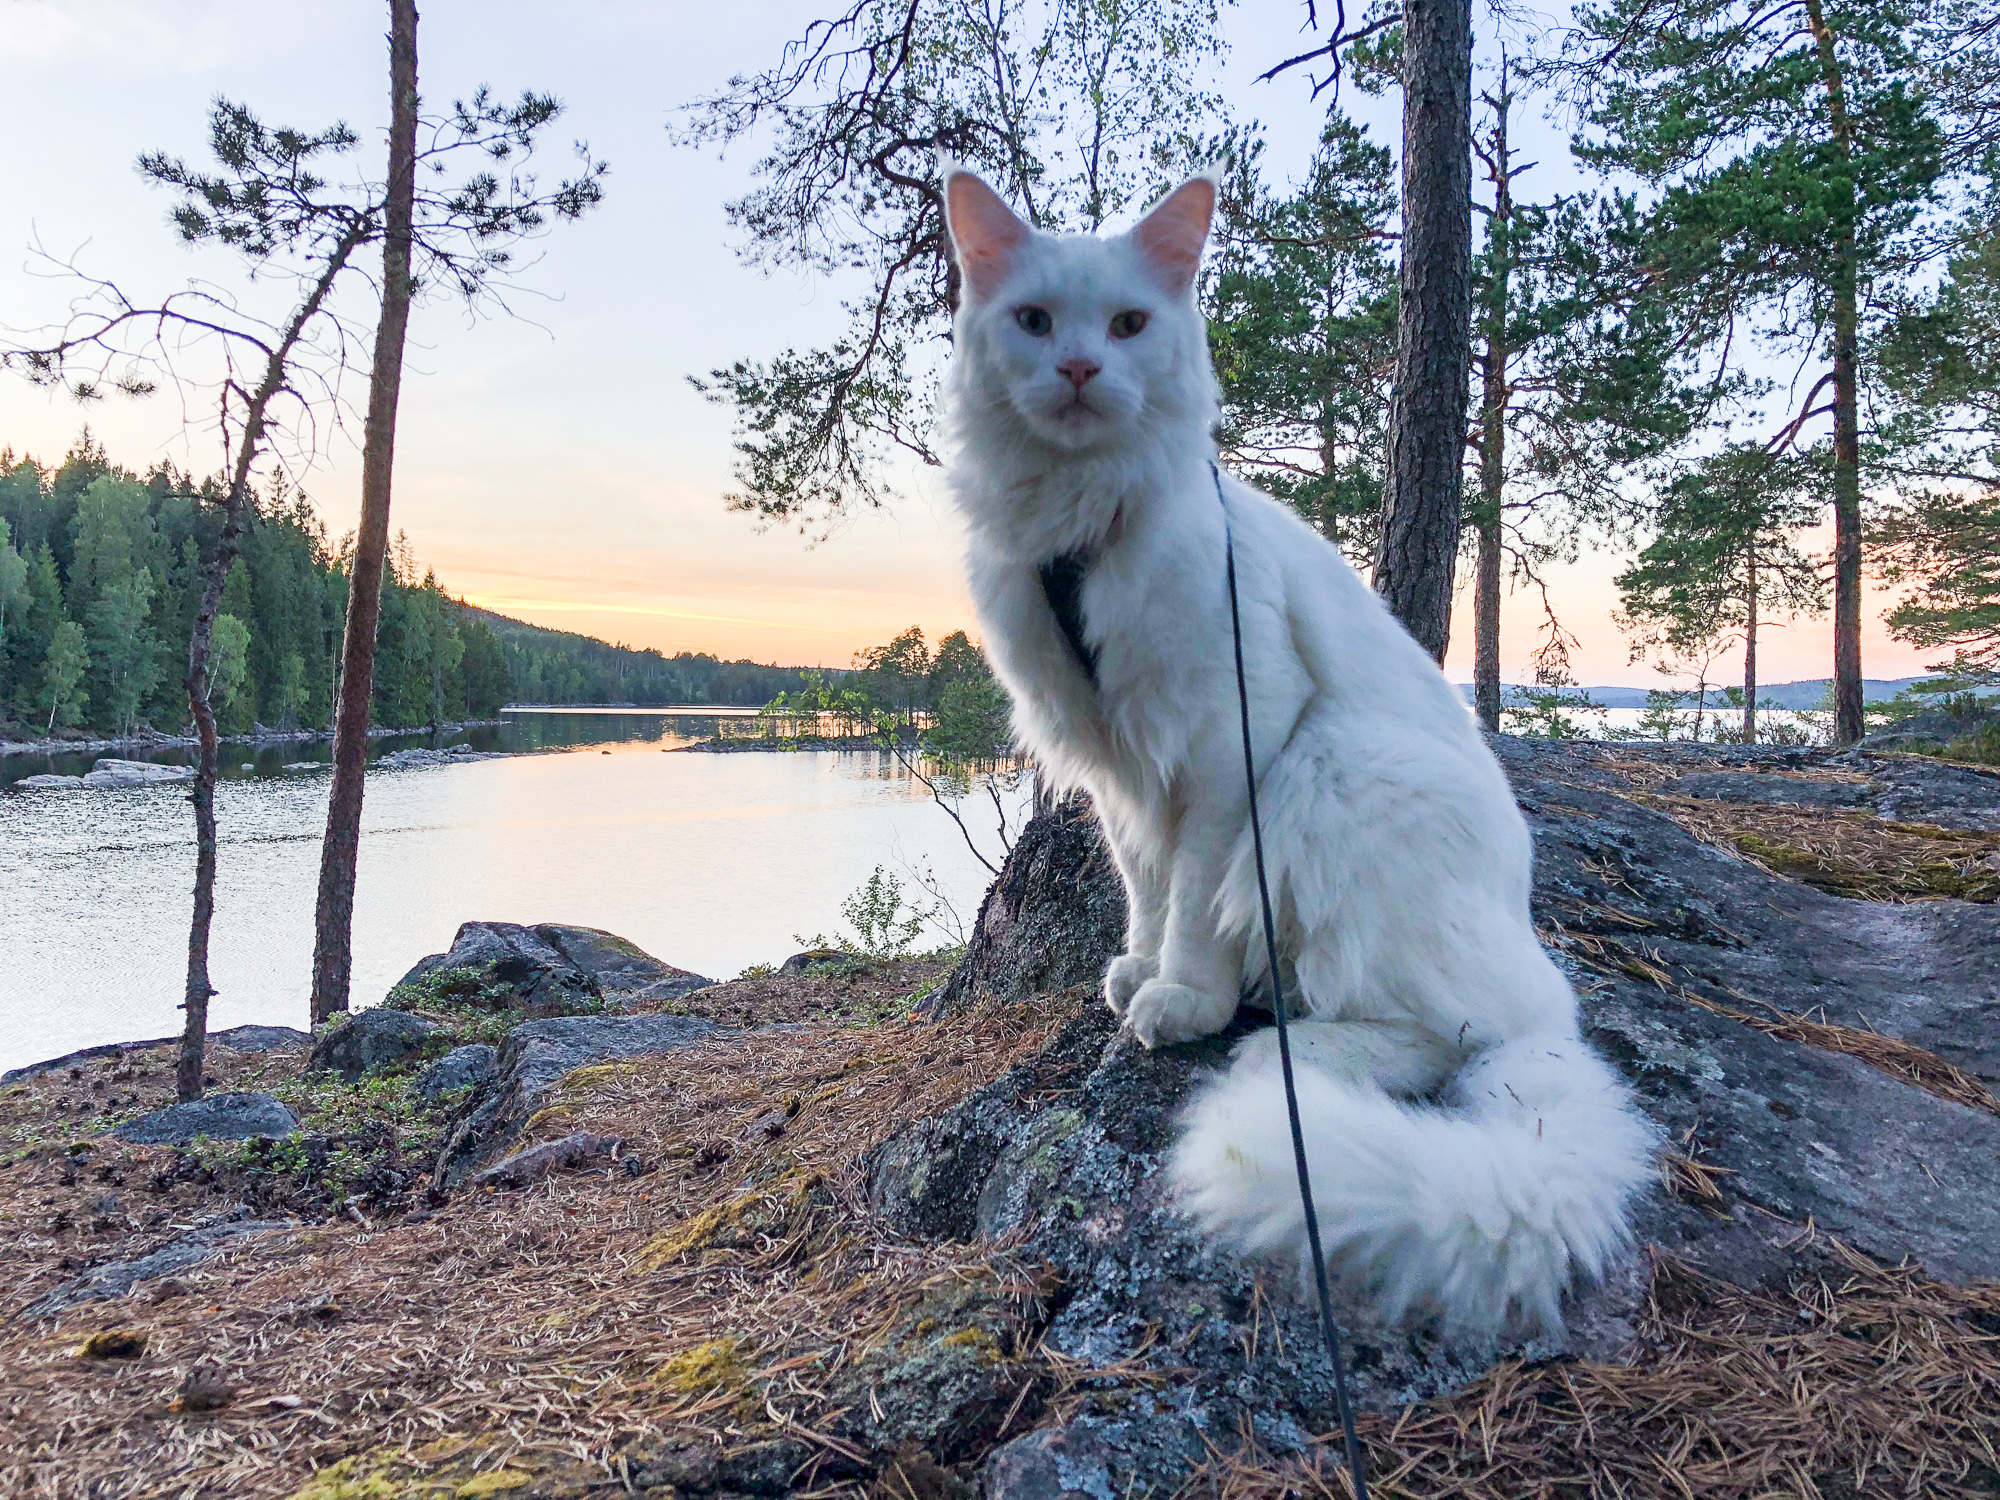 Regal Cezar poses by the water in his home country of Sweden. (Photo: Instagram/@cezars.crew)